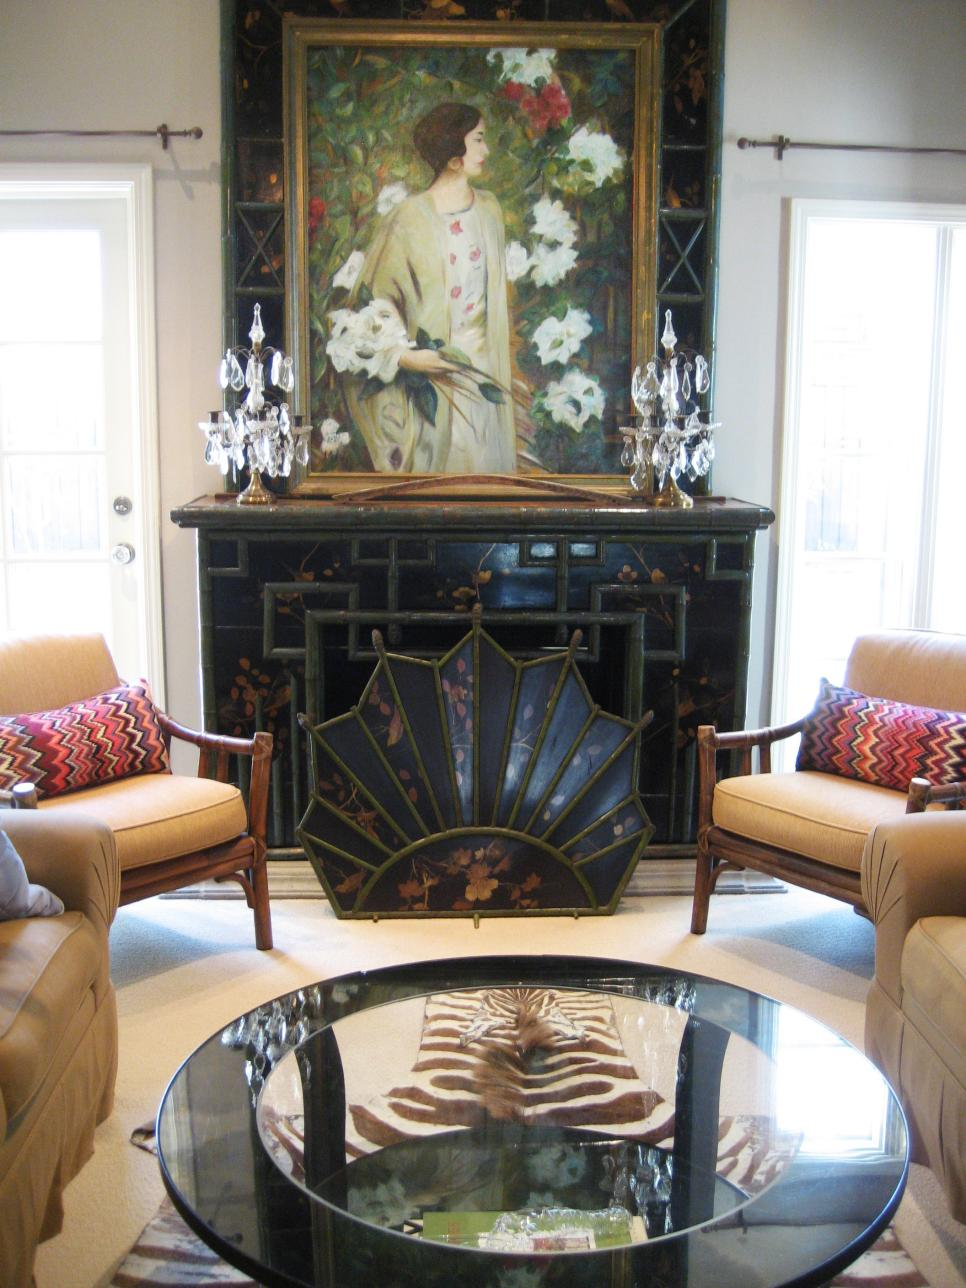 RMS_ladolfina-chinoiserie-living-room-fireplace-artwork